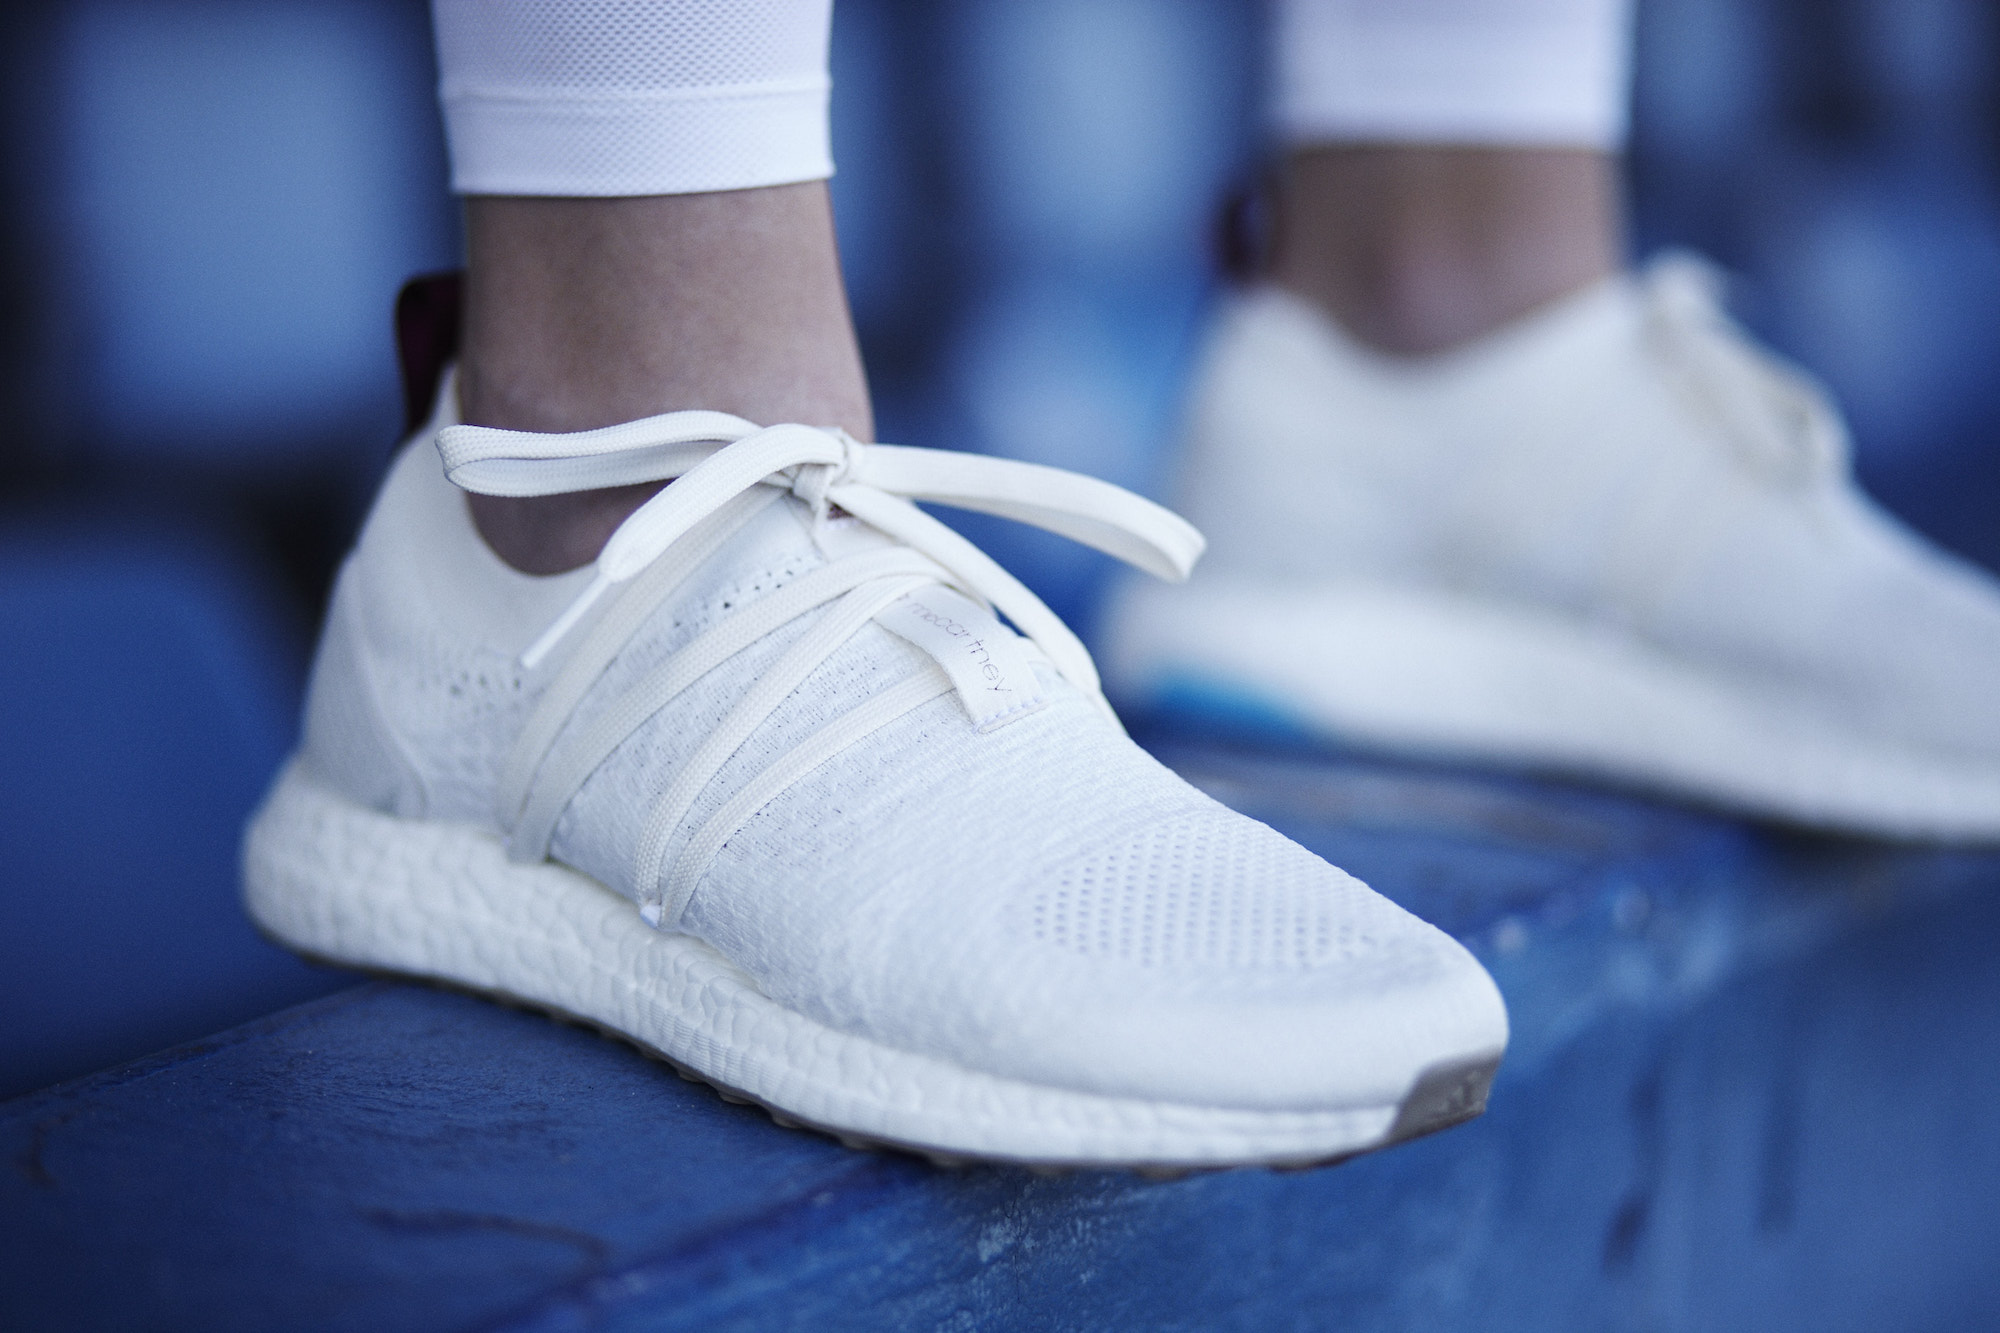 adidas by Stella McCartney Parley UltraBoost X 9